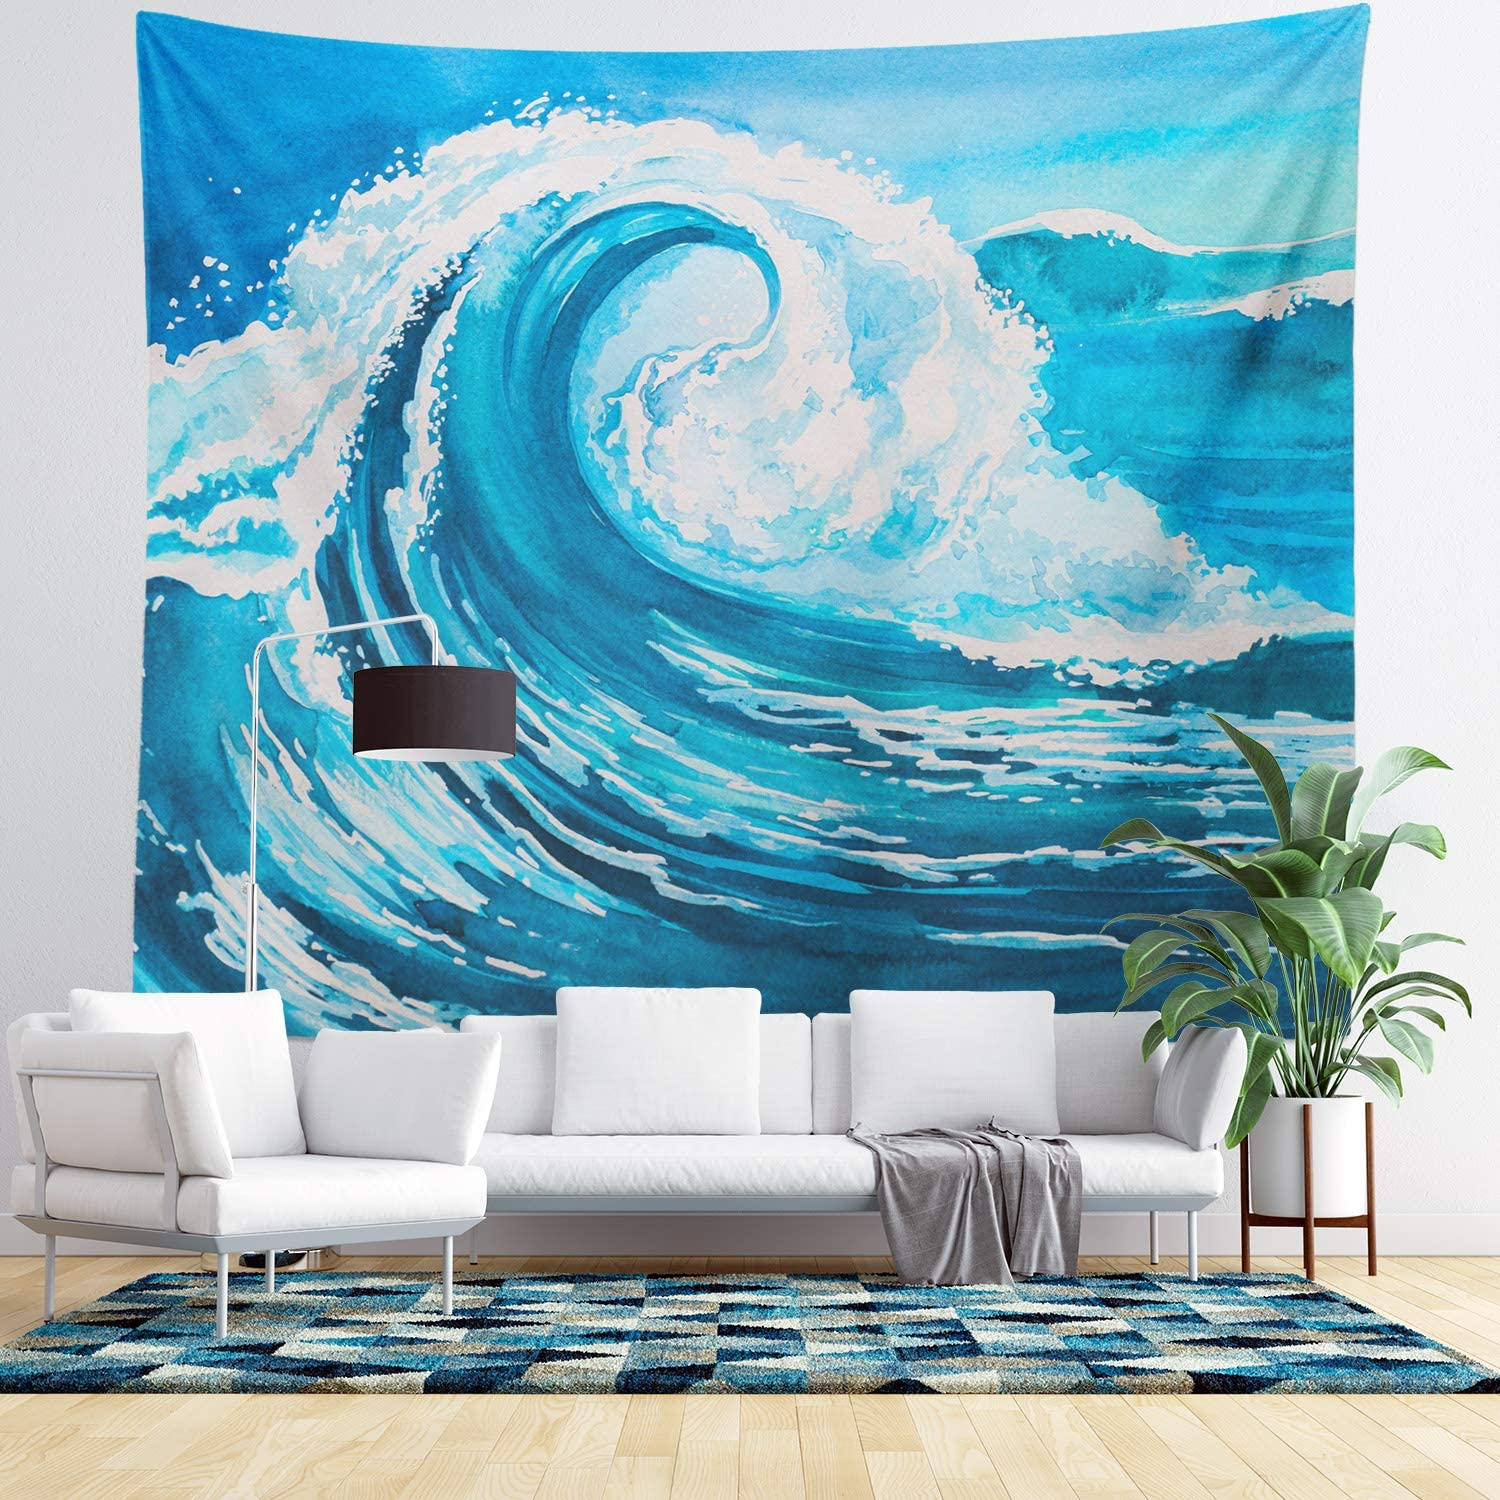 Wall Hanging Tapestry - Living Room Decor - Home Decor - Home Wall Art - Large Tapestries for Bedroom, College & Dorm (Ocean Wave Tapestry)